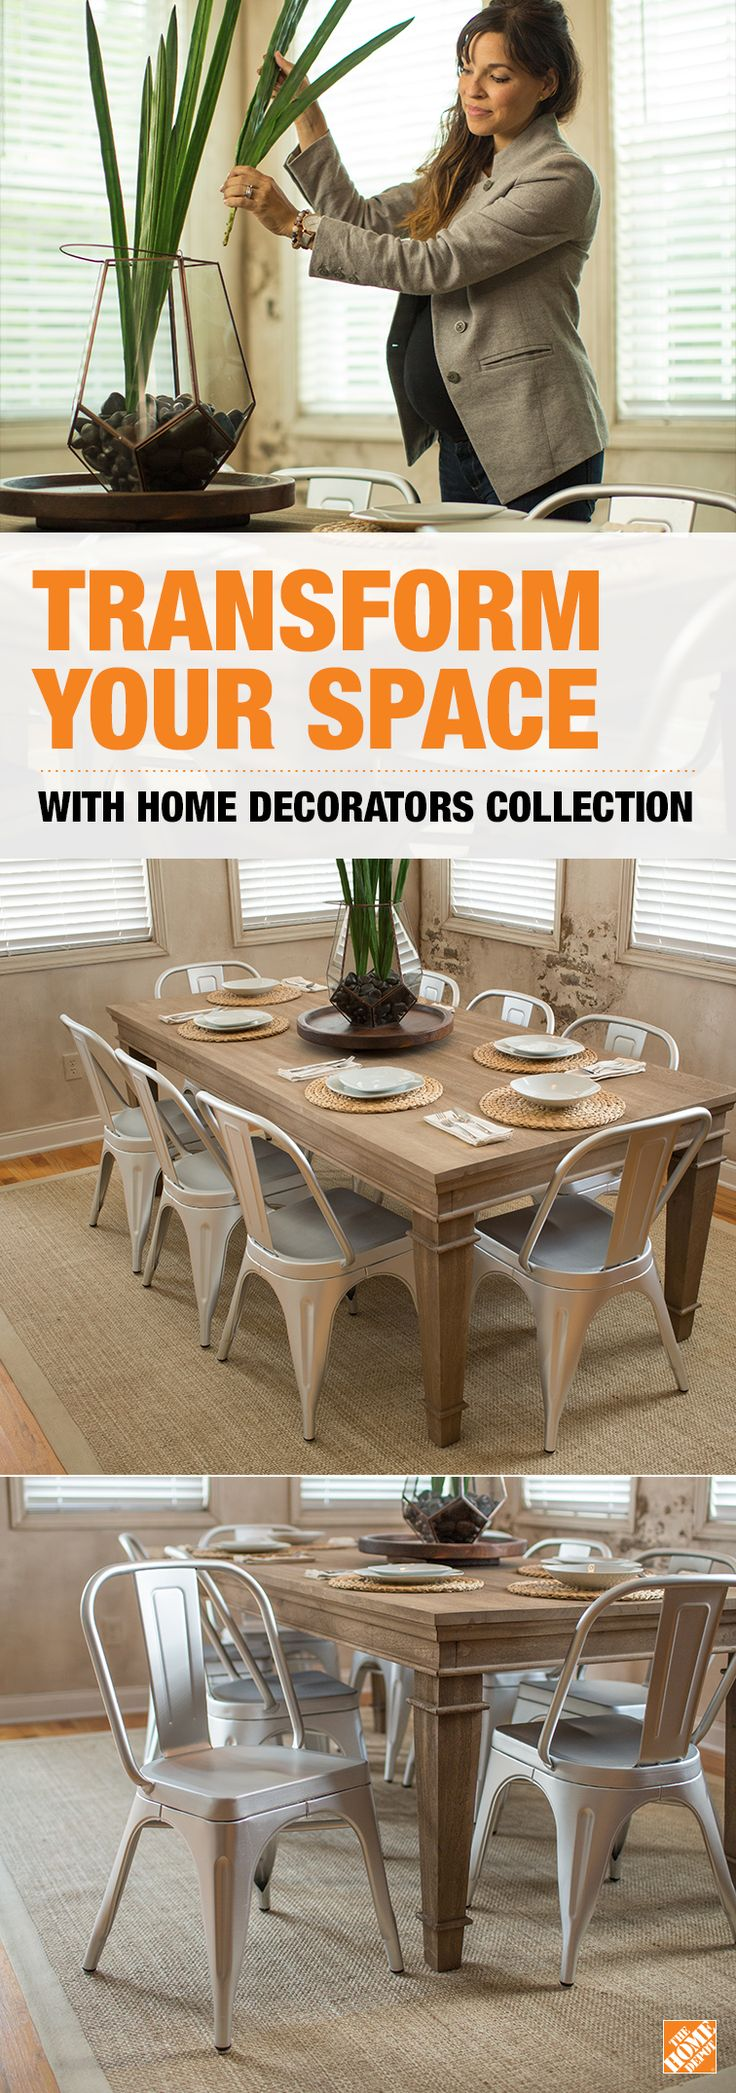 17 Best Images About Home Decorators Collection On